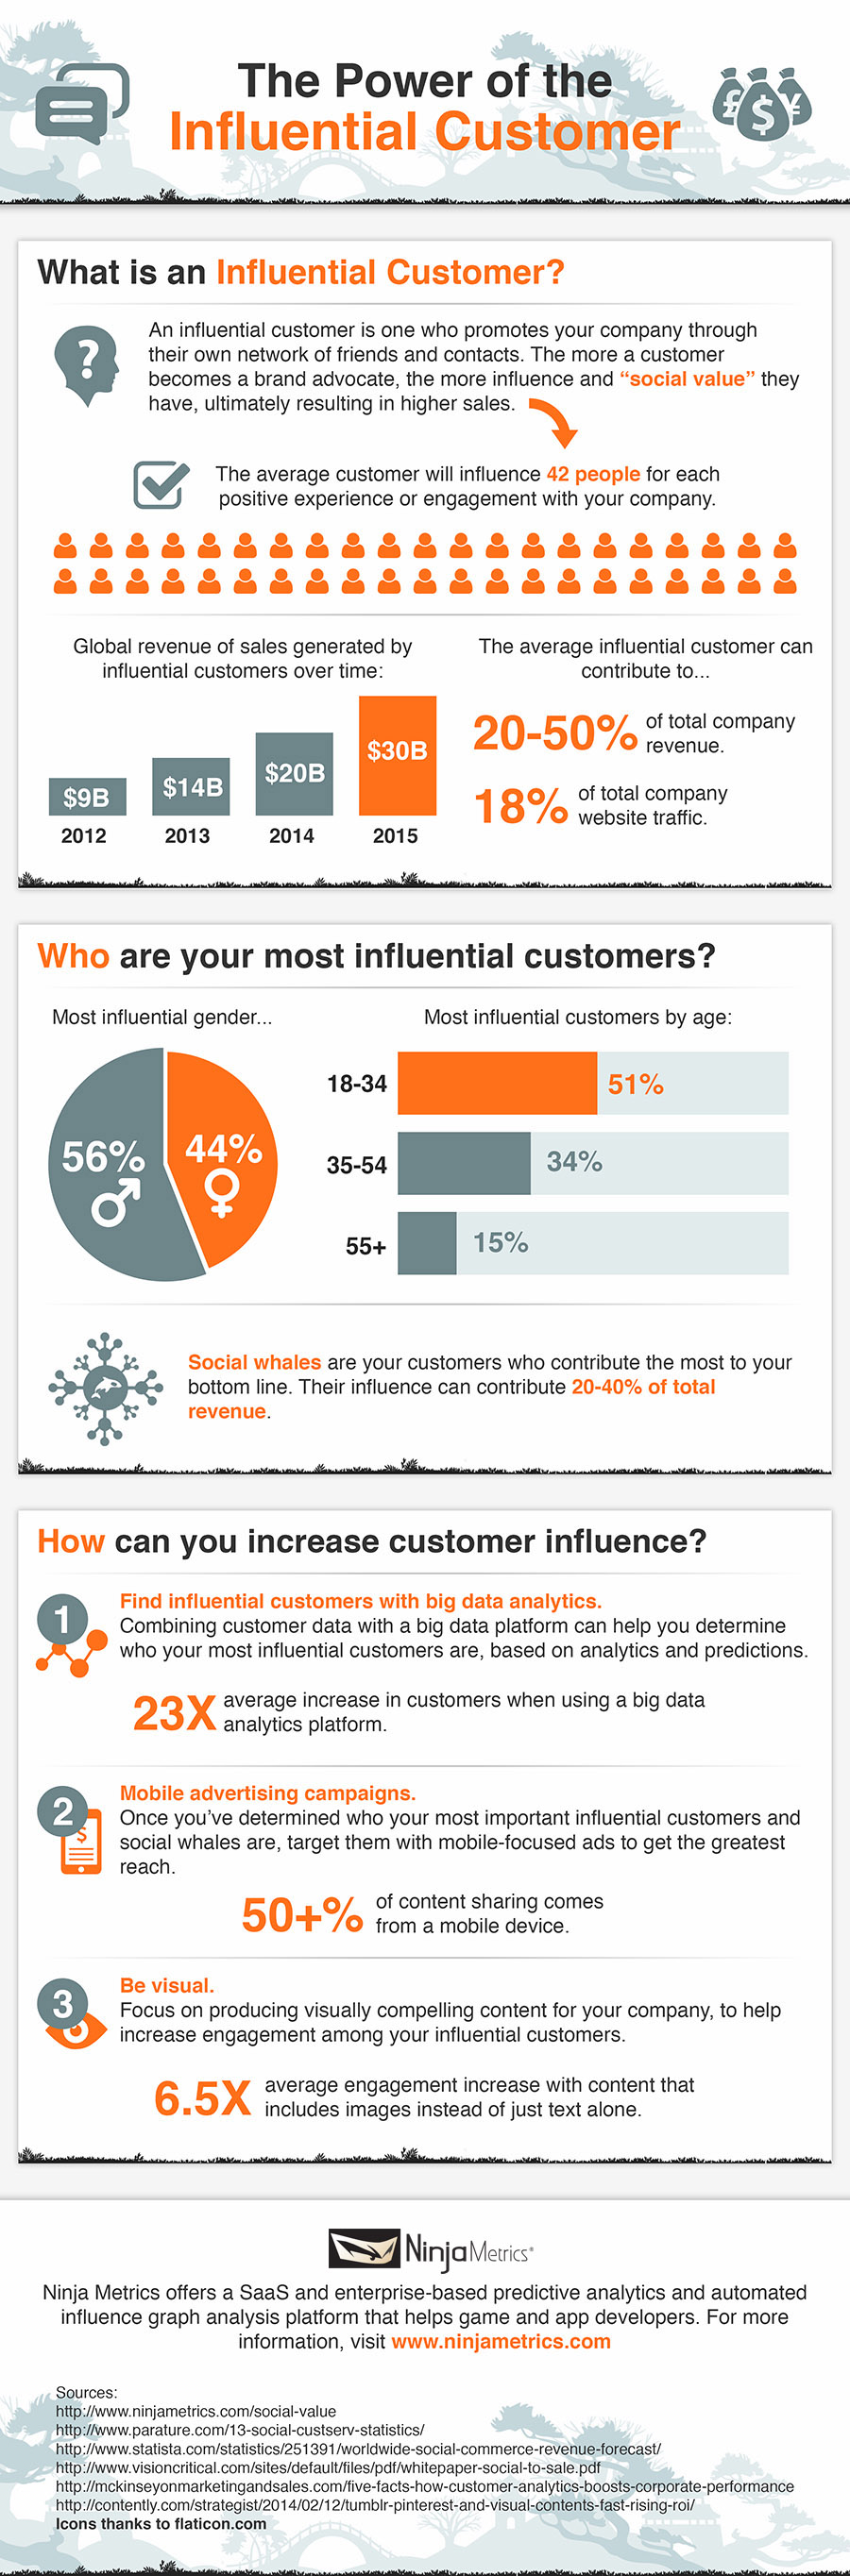 The Power of the Influential #SocialMedia User - #infographic